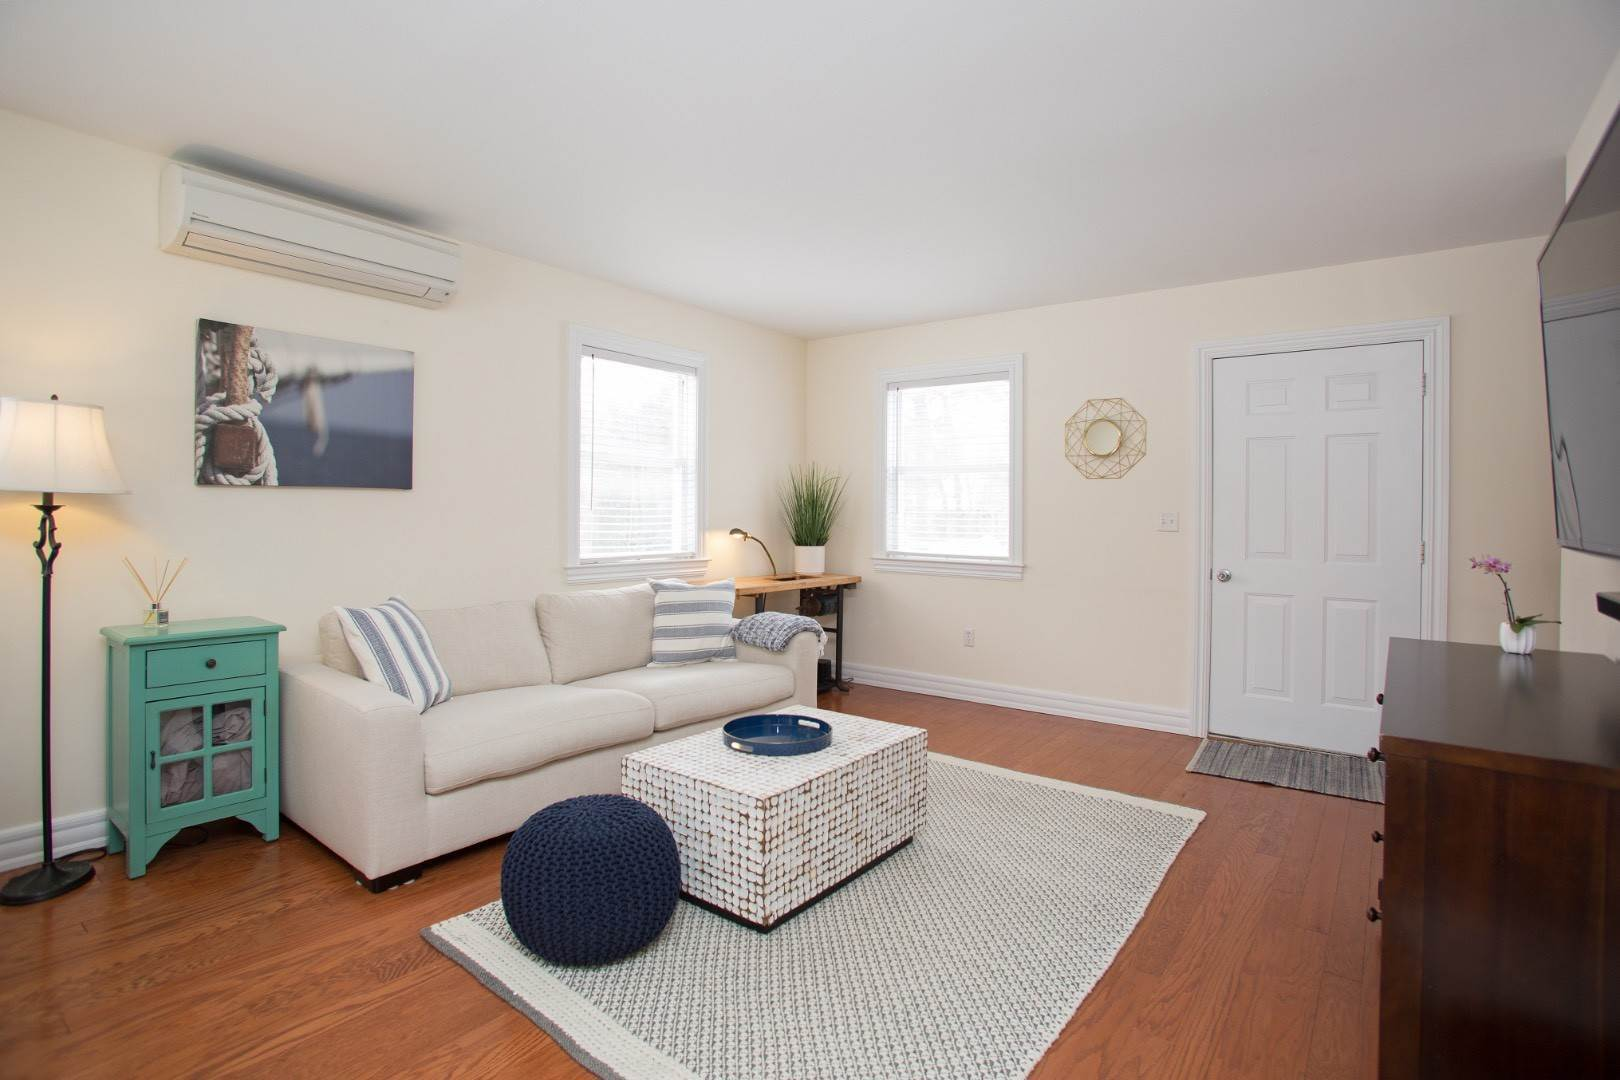 Single Family Home for Sale at Move In Ready In Eq 8 Gleason Drive, East Quogue, NY 11942